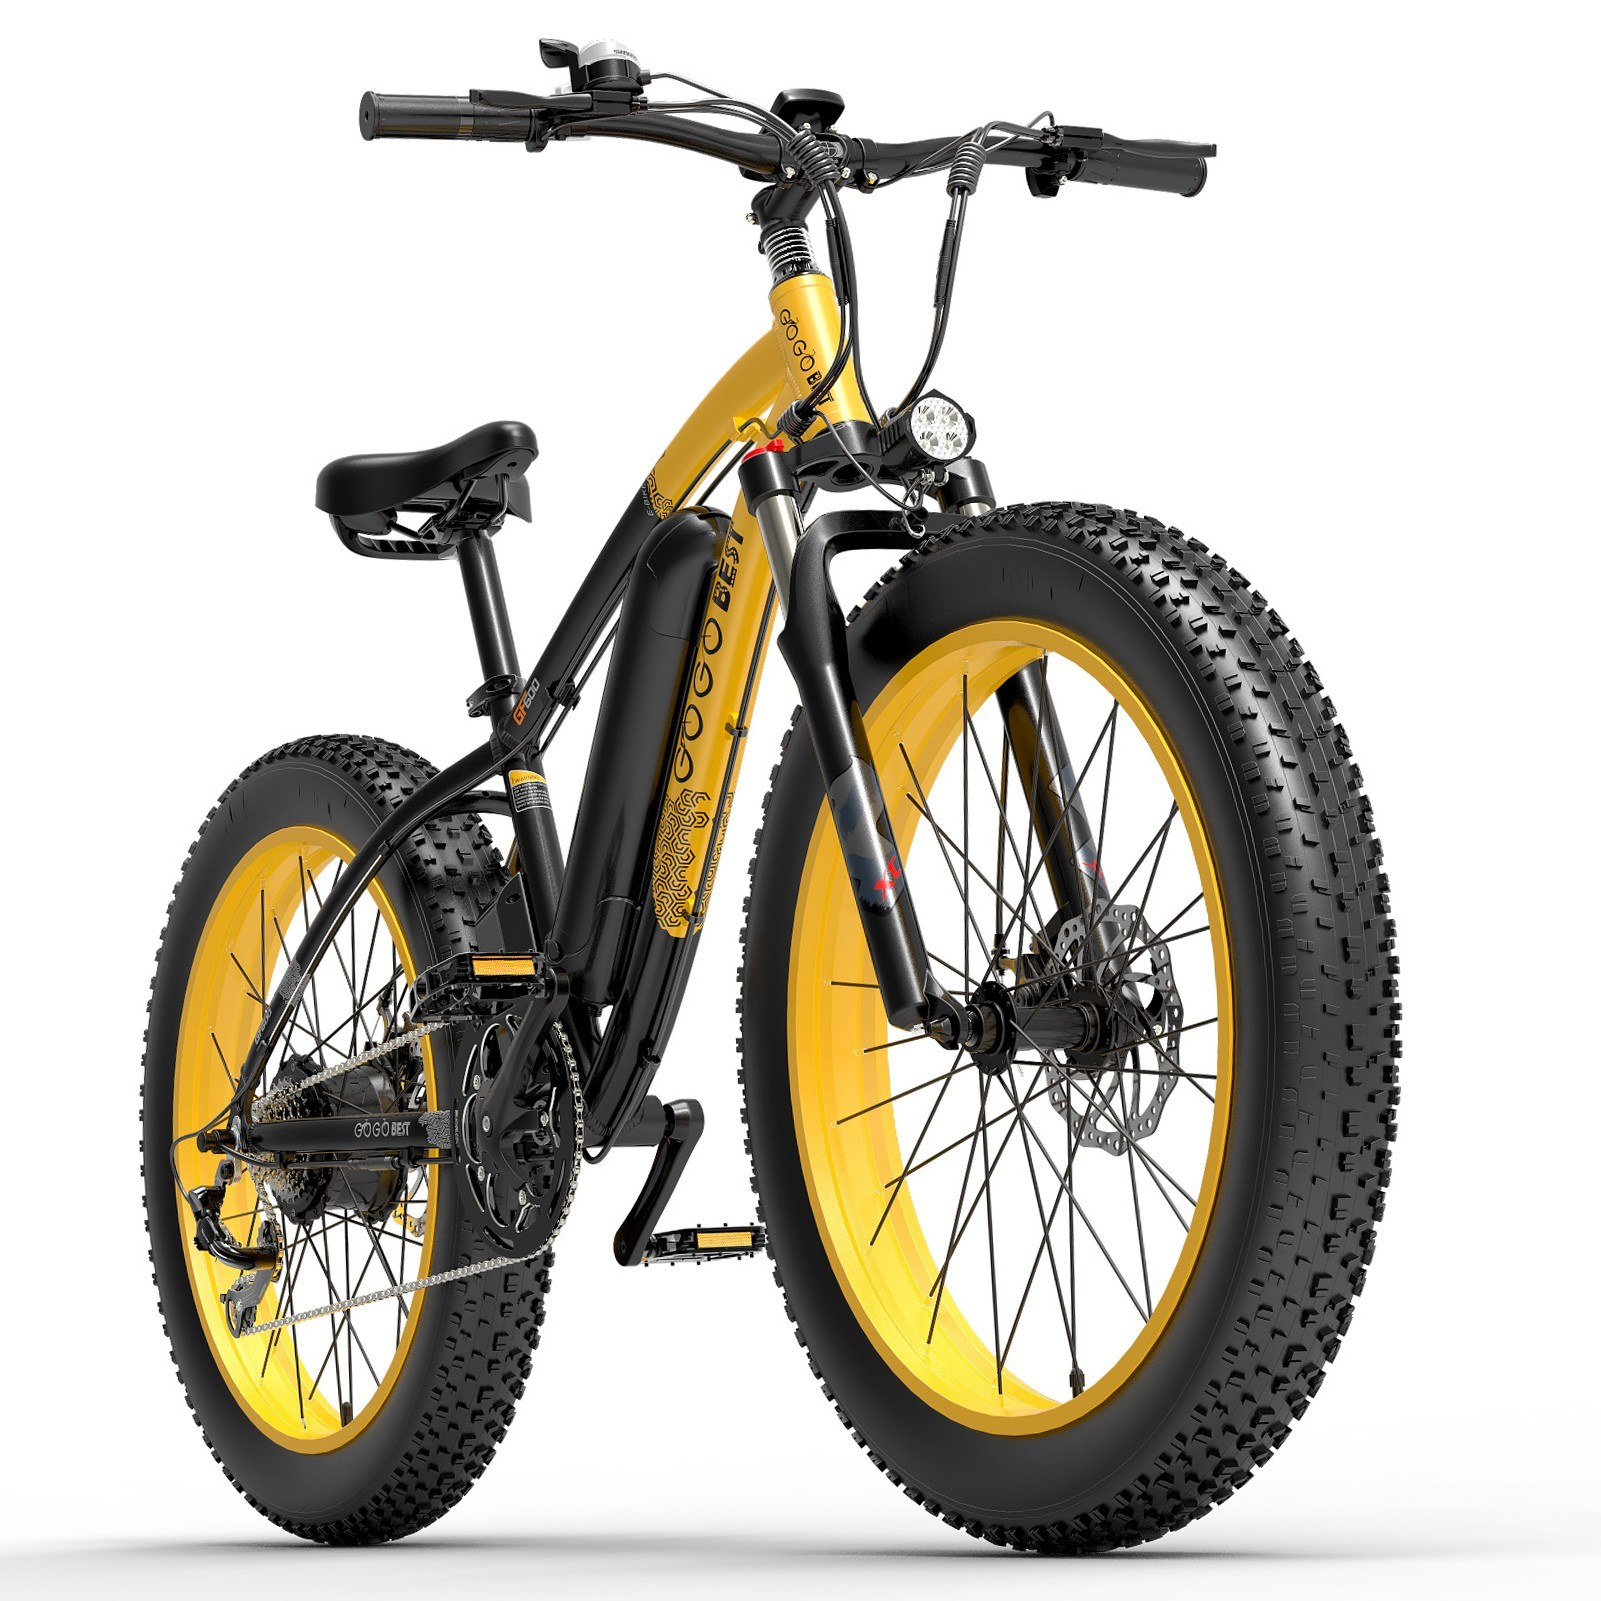 tomtop.com - [EU Warehouse] GOGOBEST GF600 1000W Power Assist Electric Bicycle, $1411.75 (Inclusive of VAT)